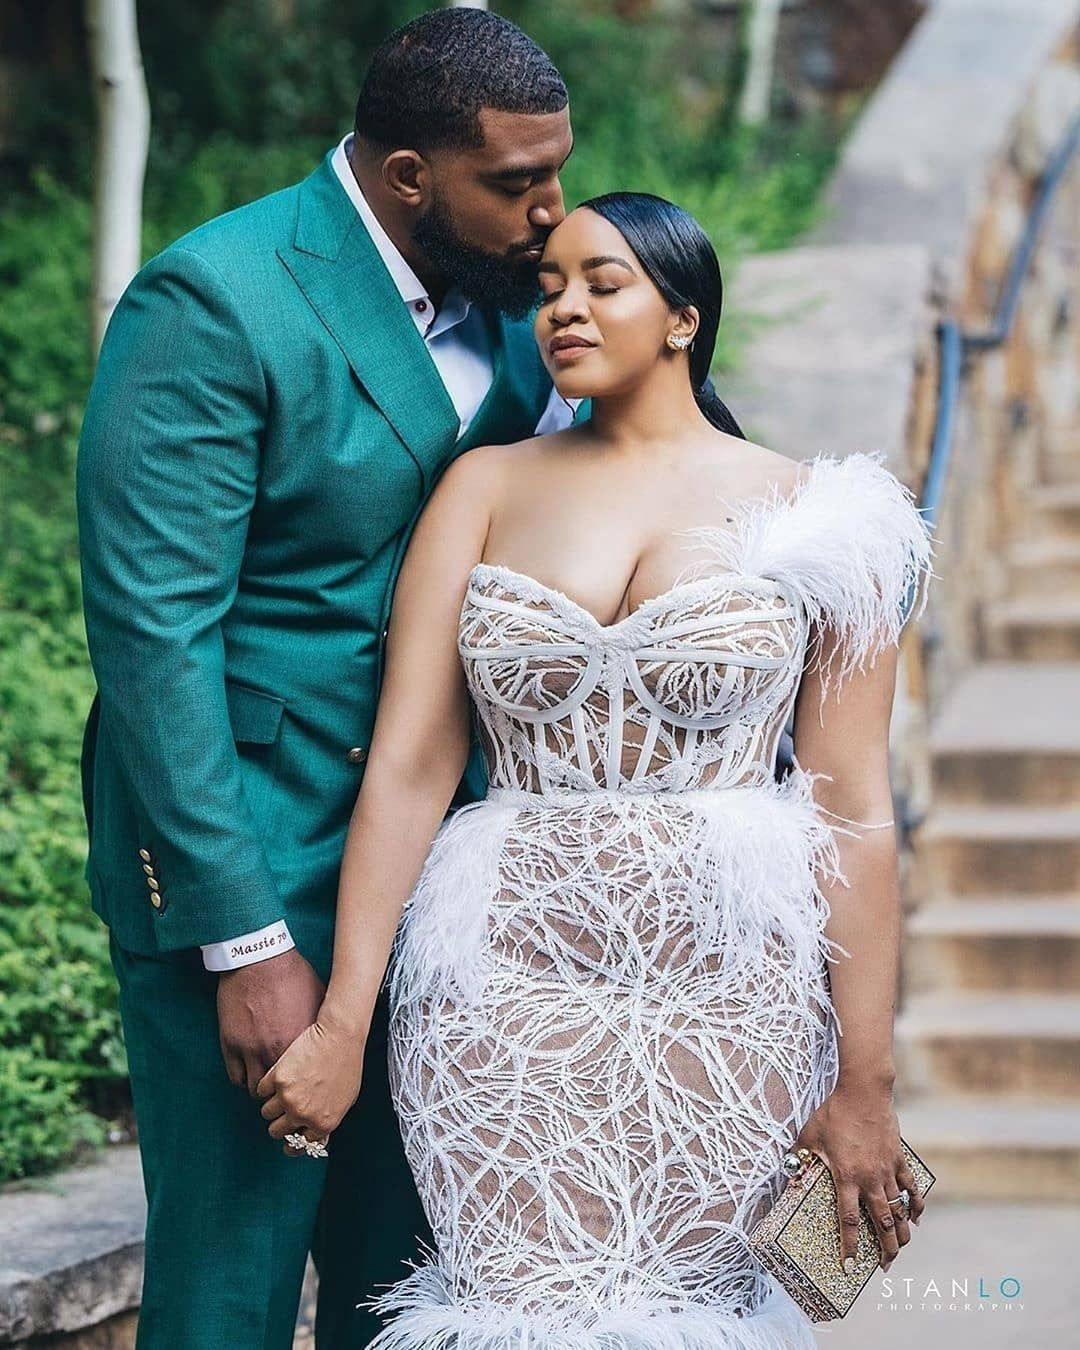 Plus Size Brides can have custom wedding gowns and